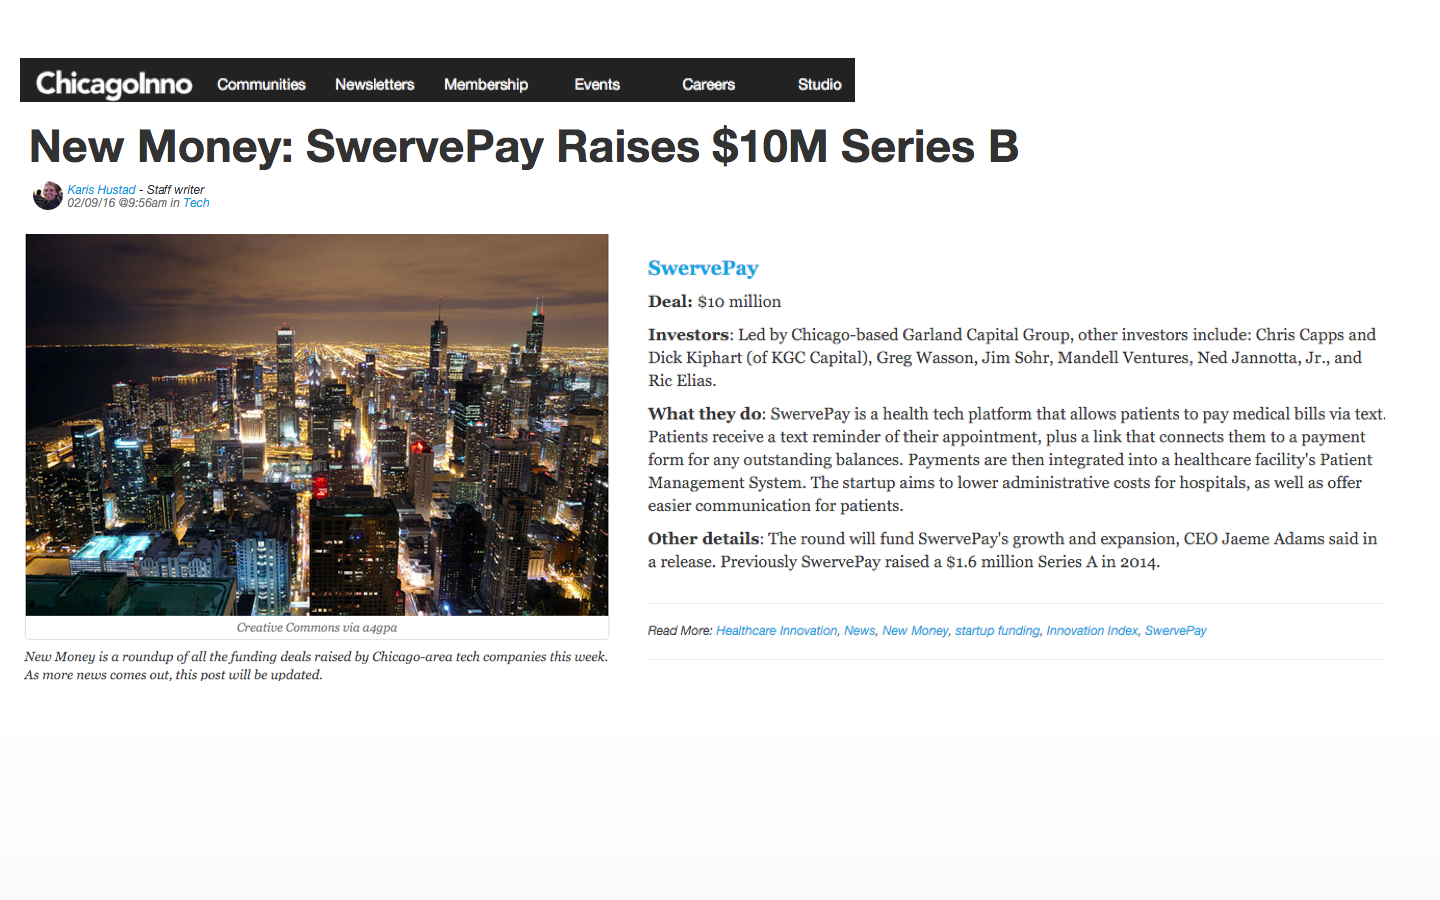 SwervePay_ChicagoInno_Feb9